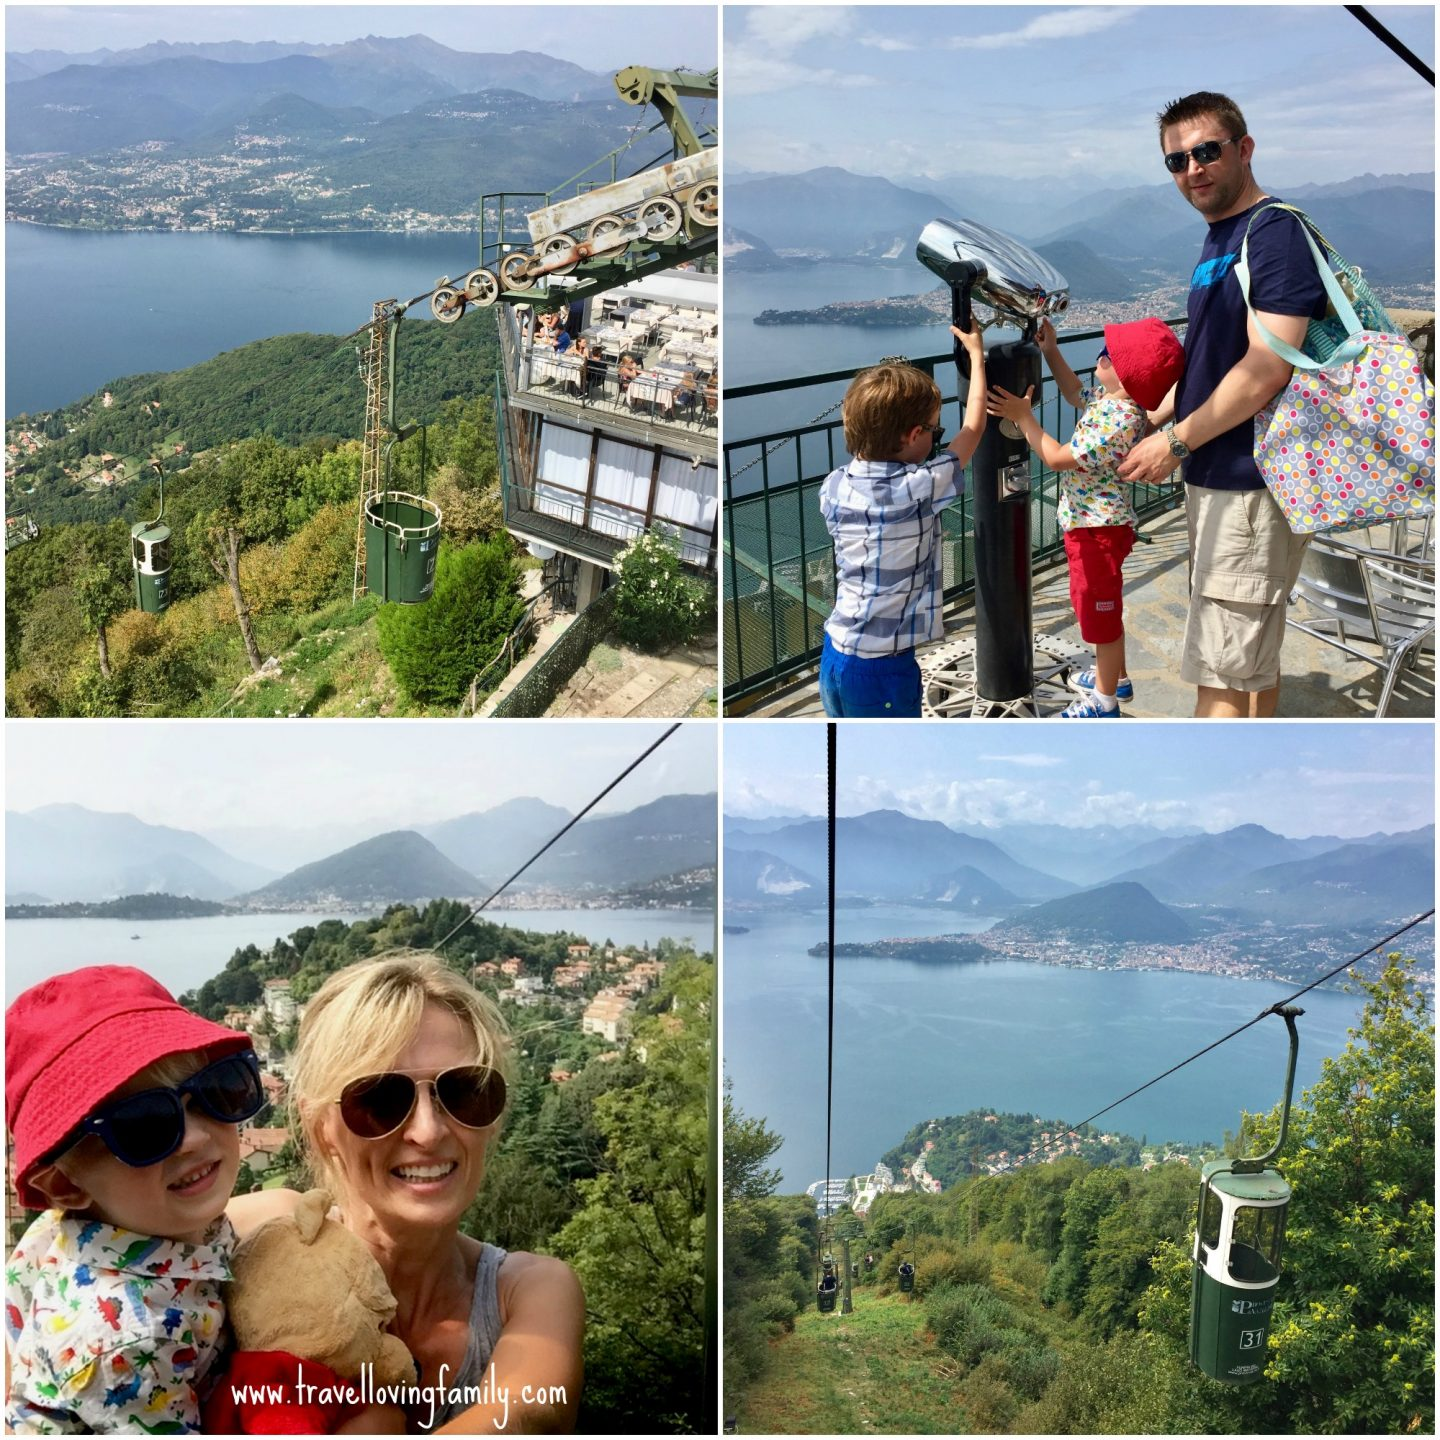 things to do with kids near Lake Maggiore, Italian Lakes - bucket ride